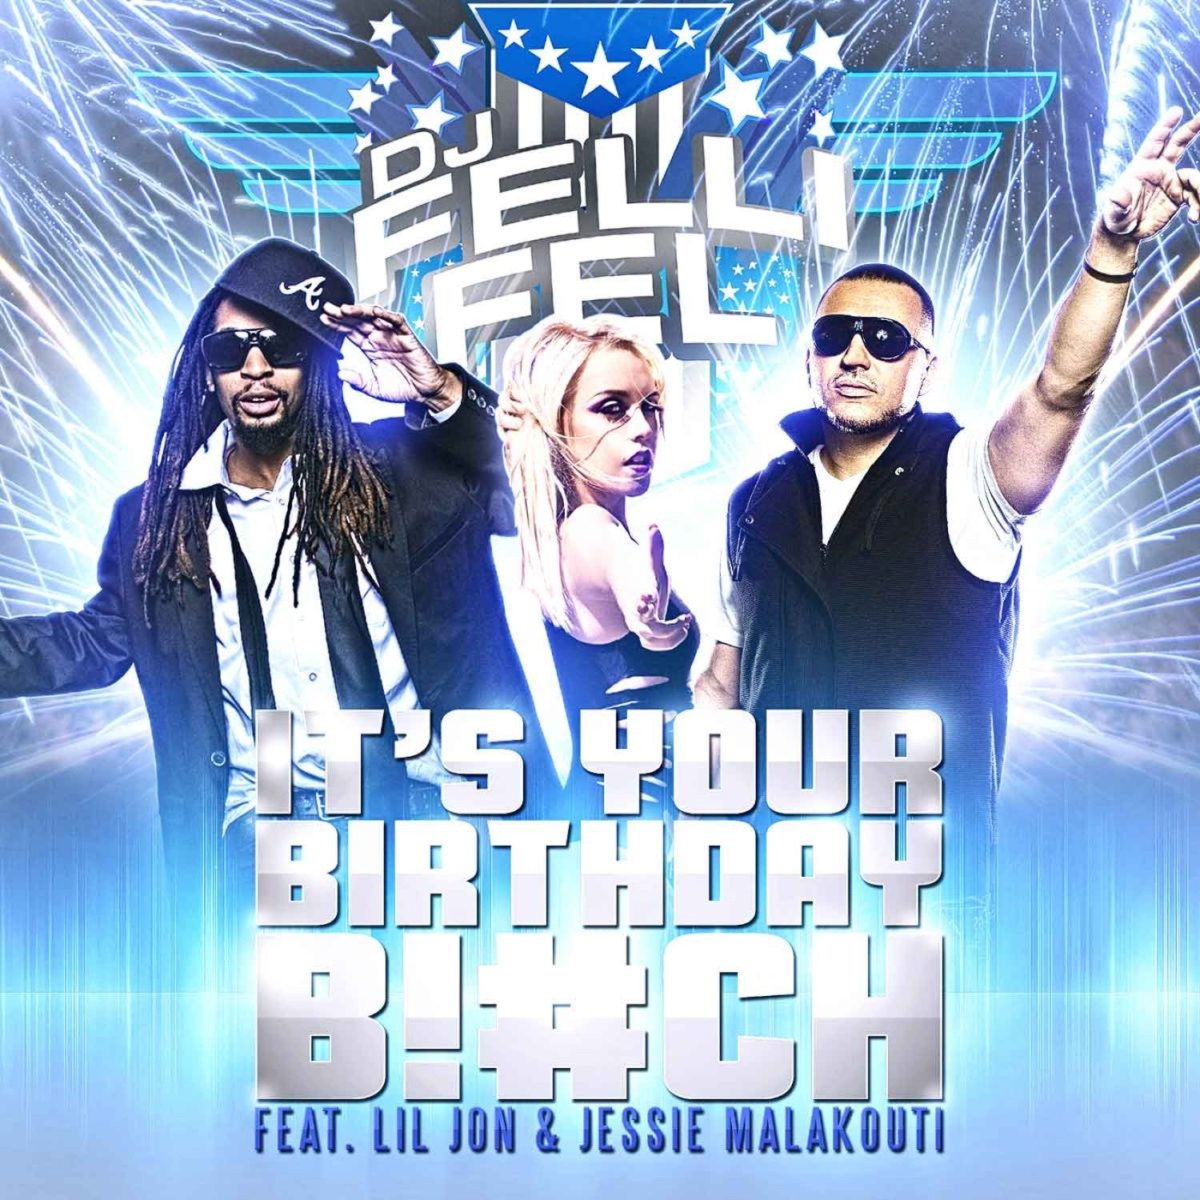 It's Your Birthday Album Cover by DJ Felli Fel